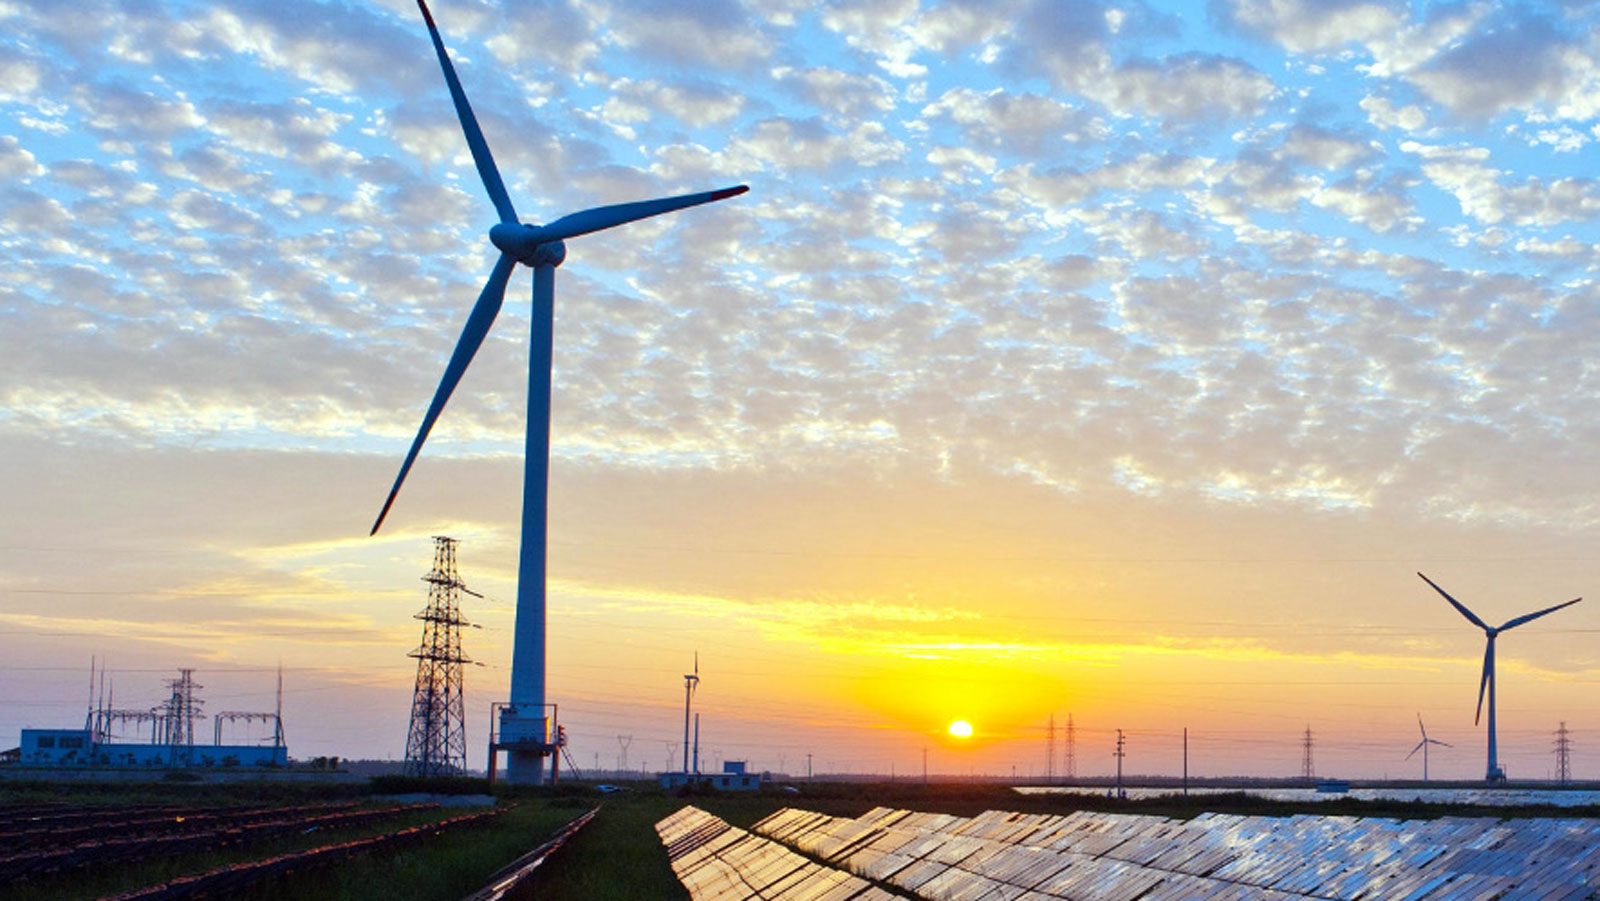 """<h3>WIND ENERGY</h3><h5>America has more than <span class=""""slideshowHighlight"""">tripled the amount of wind power</span> it produces since 2009, enough to power over 26 million homes.</h5>"""